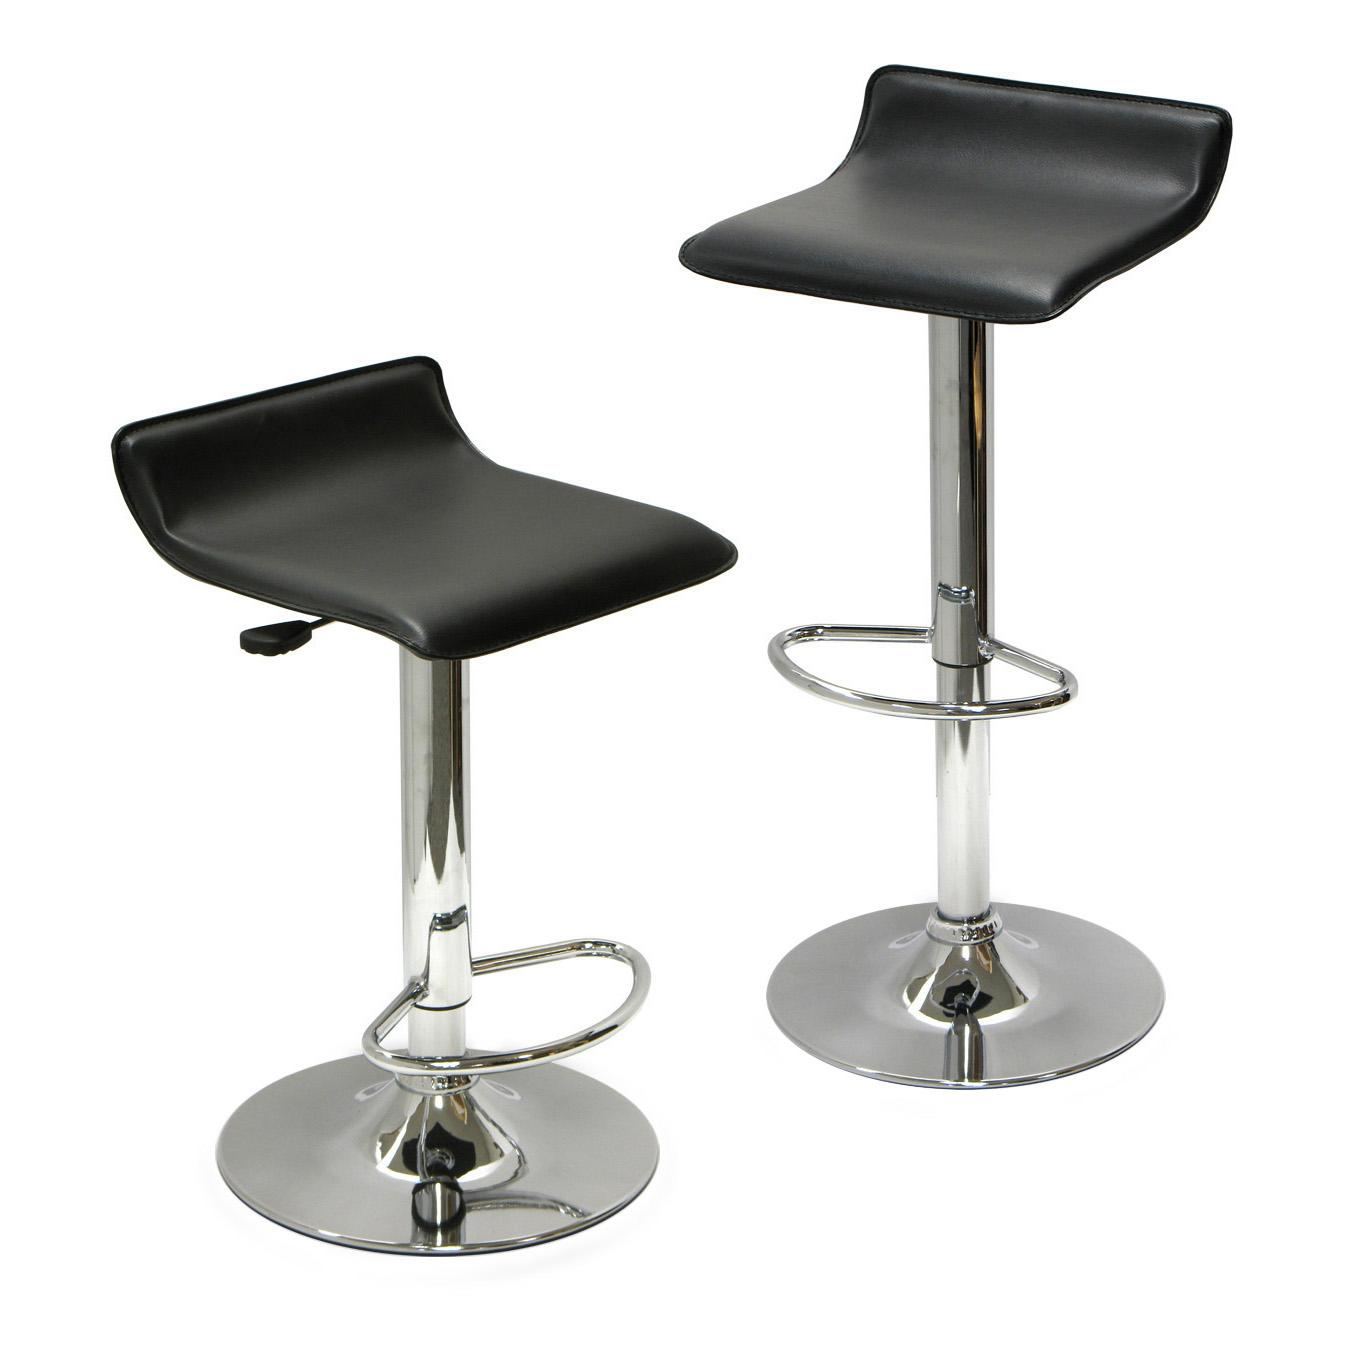 View larger  sc 1 st  Amazon.com : swivel adjustable stool - islam-shia.org